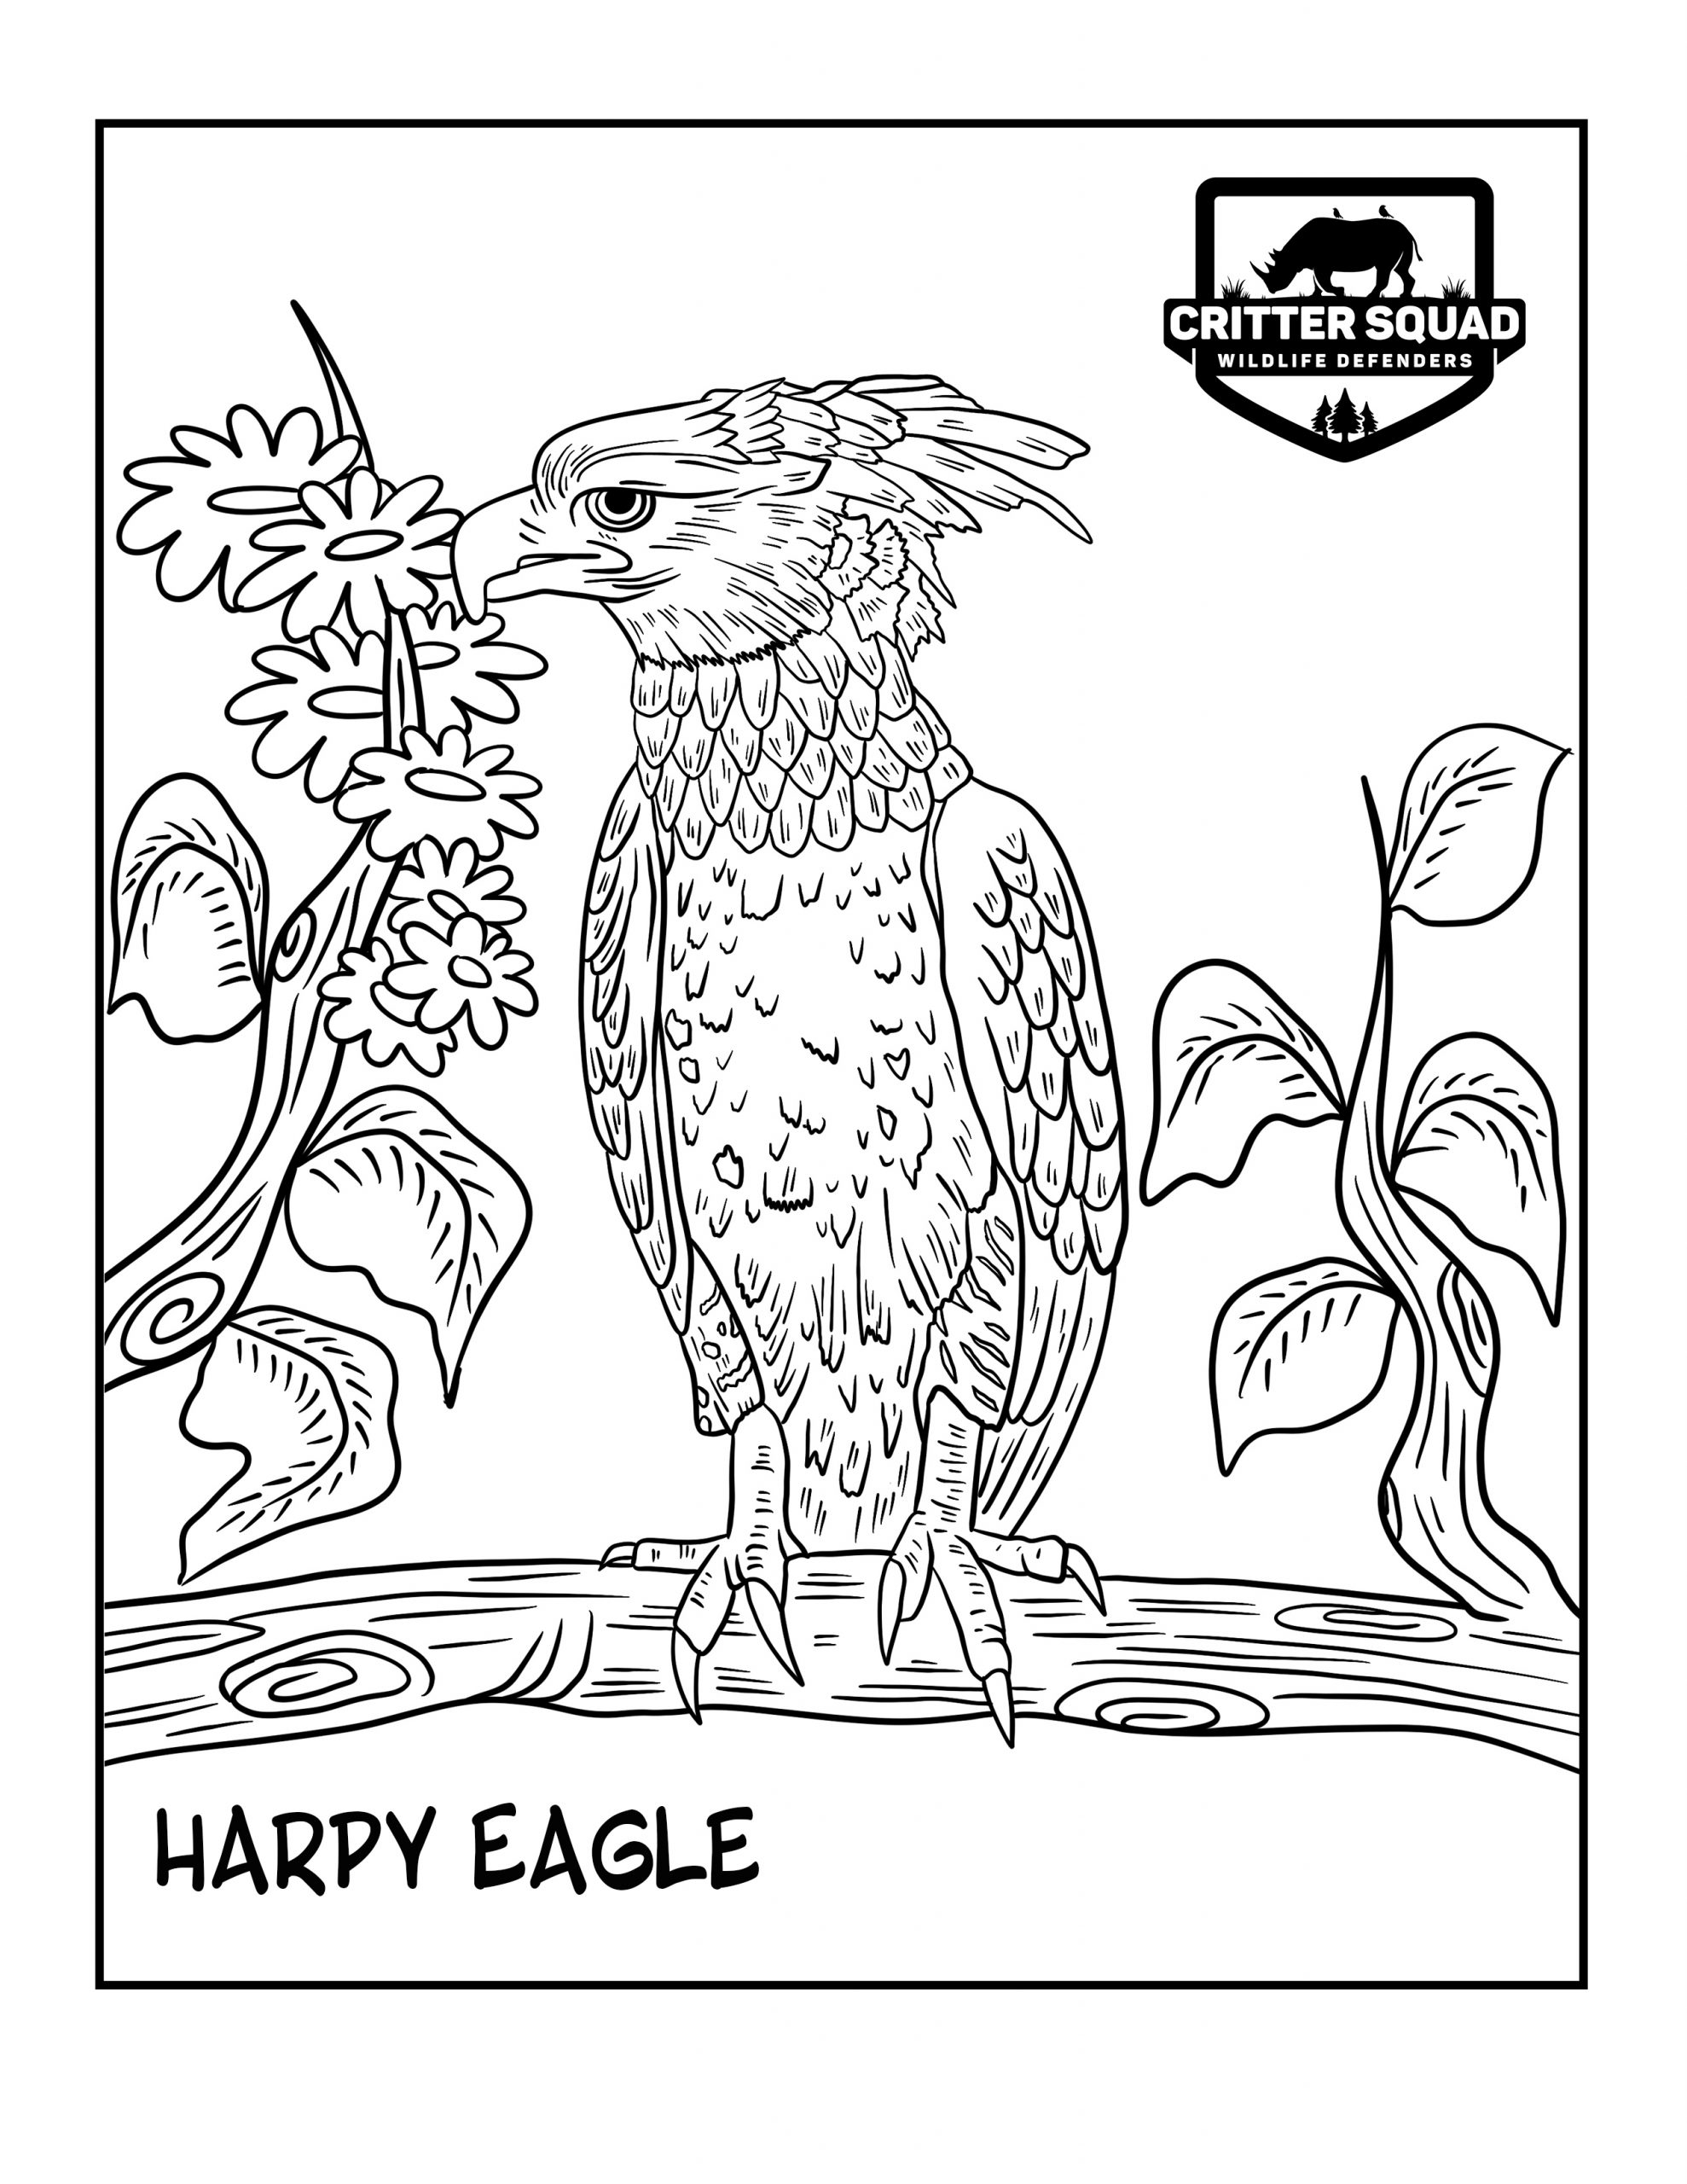 eagle coloring eagle coloring pages download and print eagle coloring pages eagle coloring